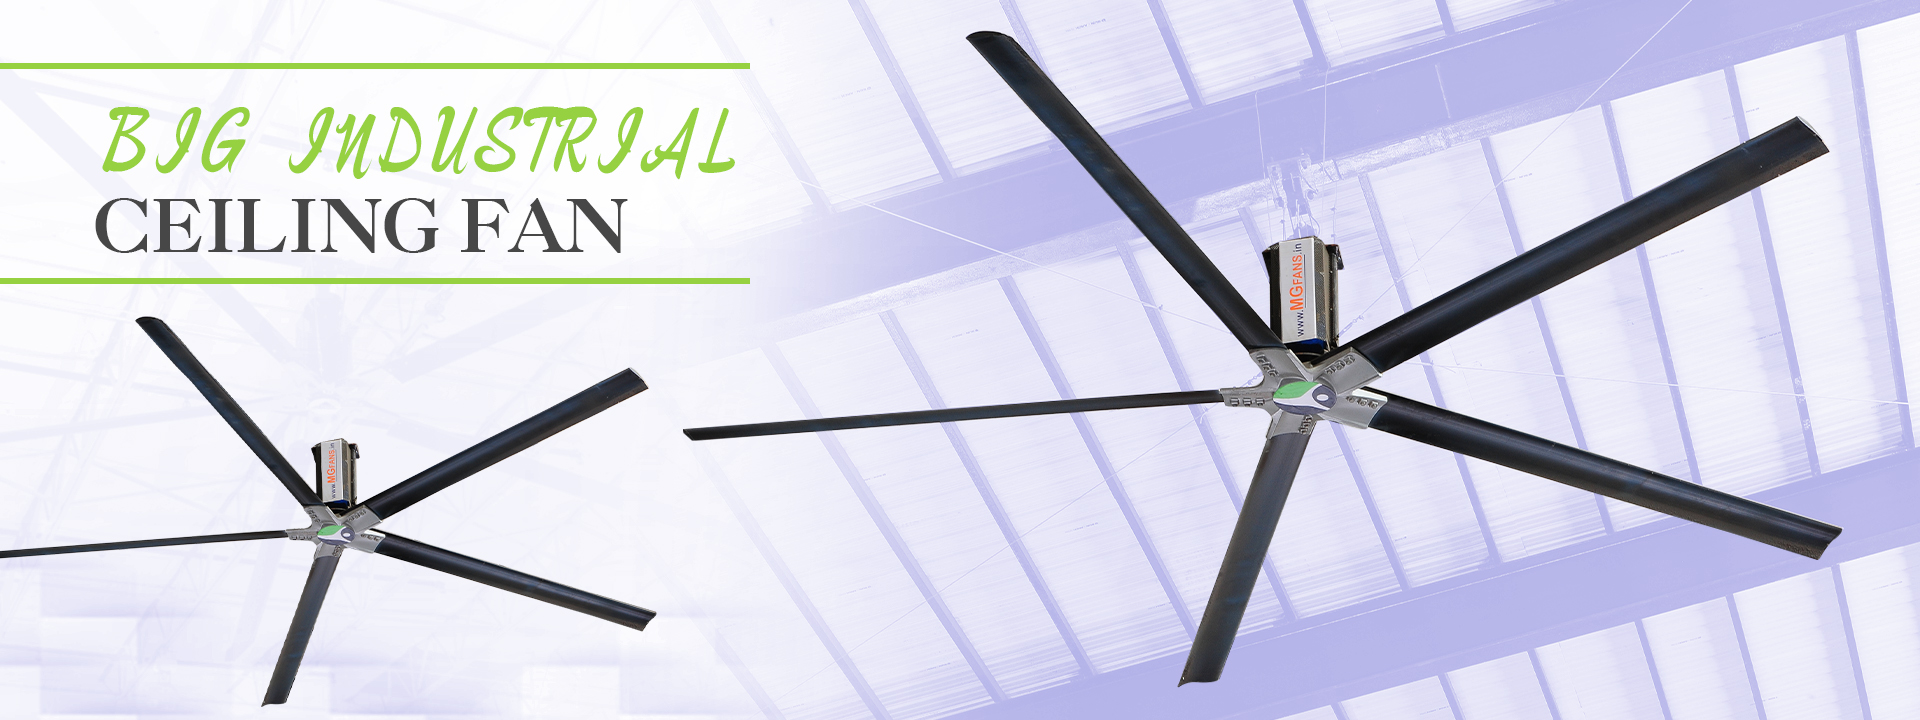 BIG INDUSTRIAL CEILING FAN